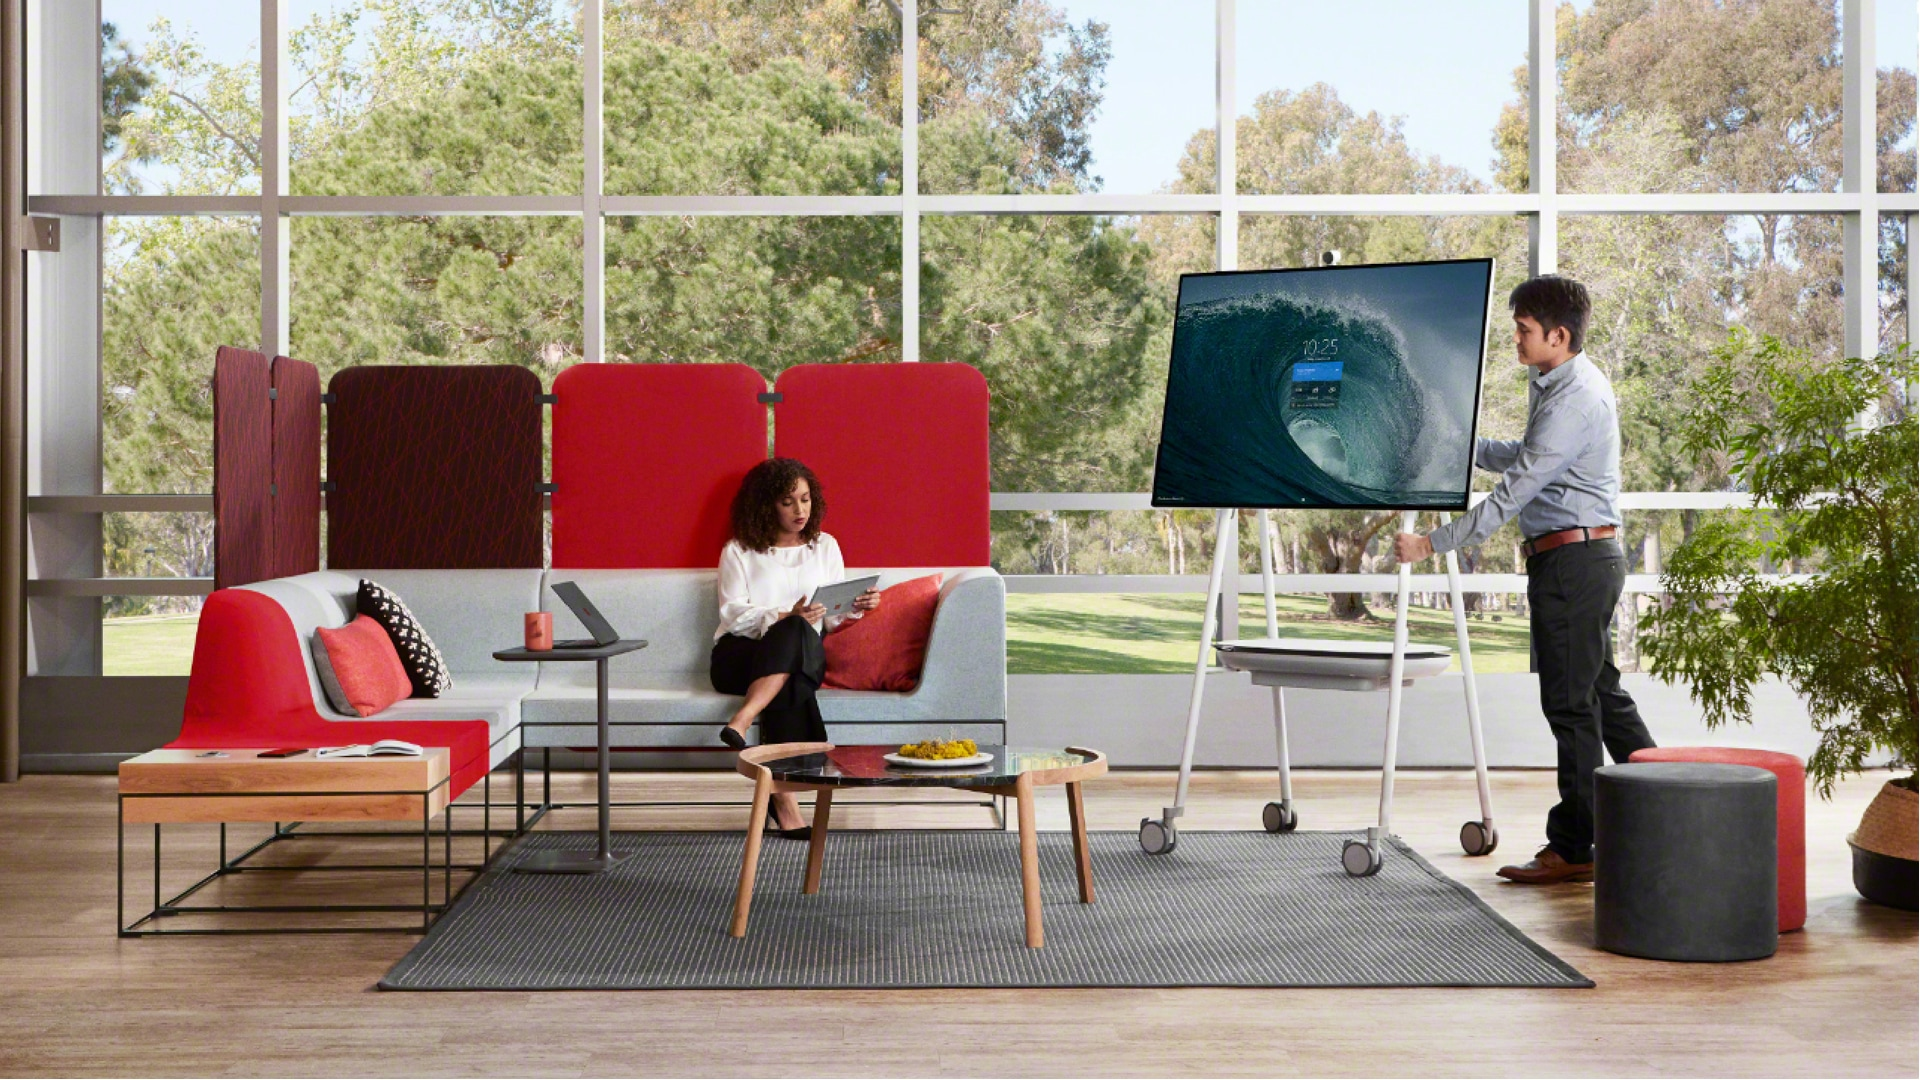 Man standing next to Surface Hub 2S while woman sits looking towards him on a couch